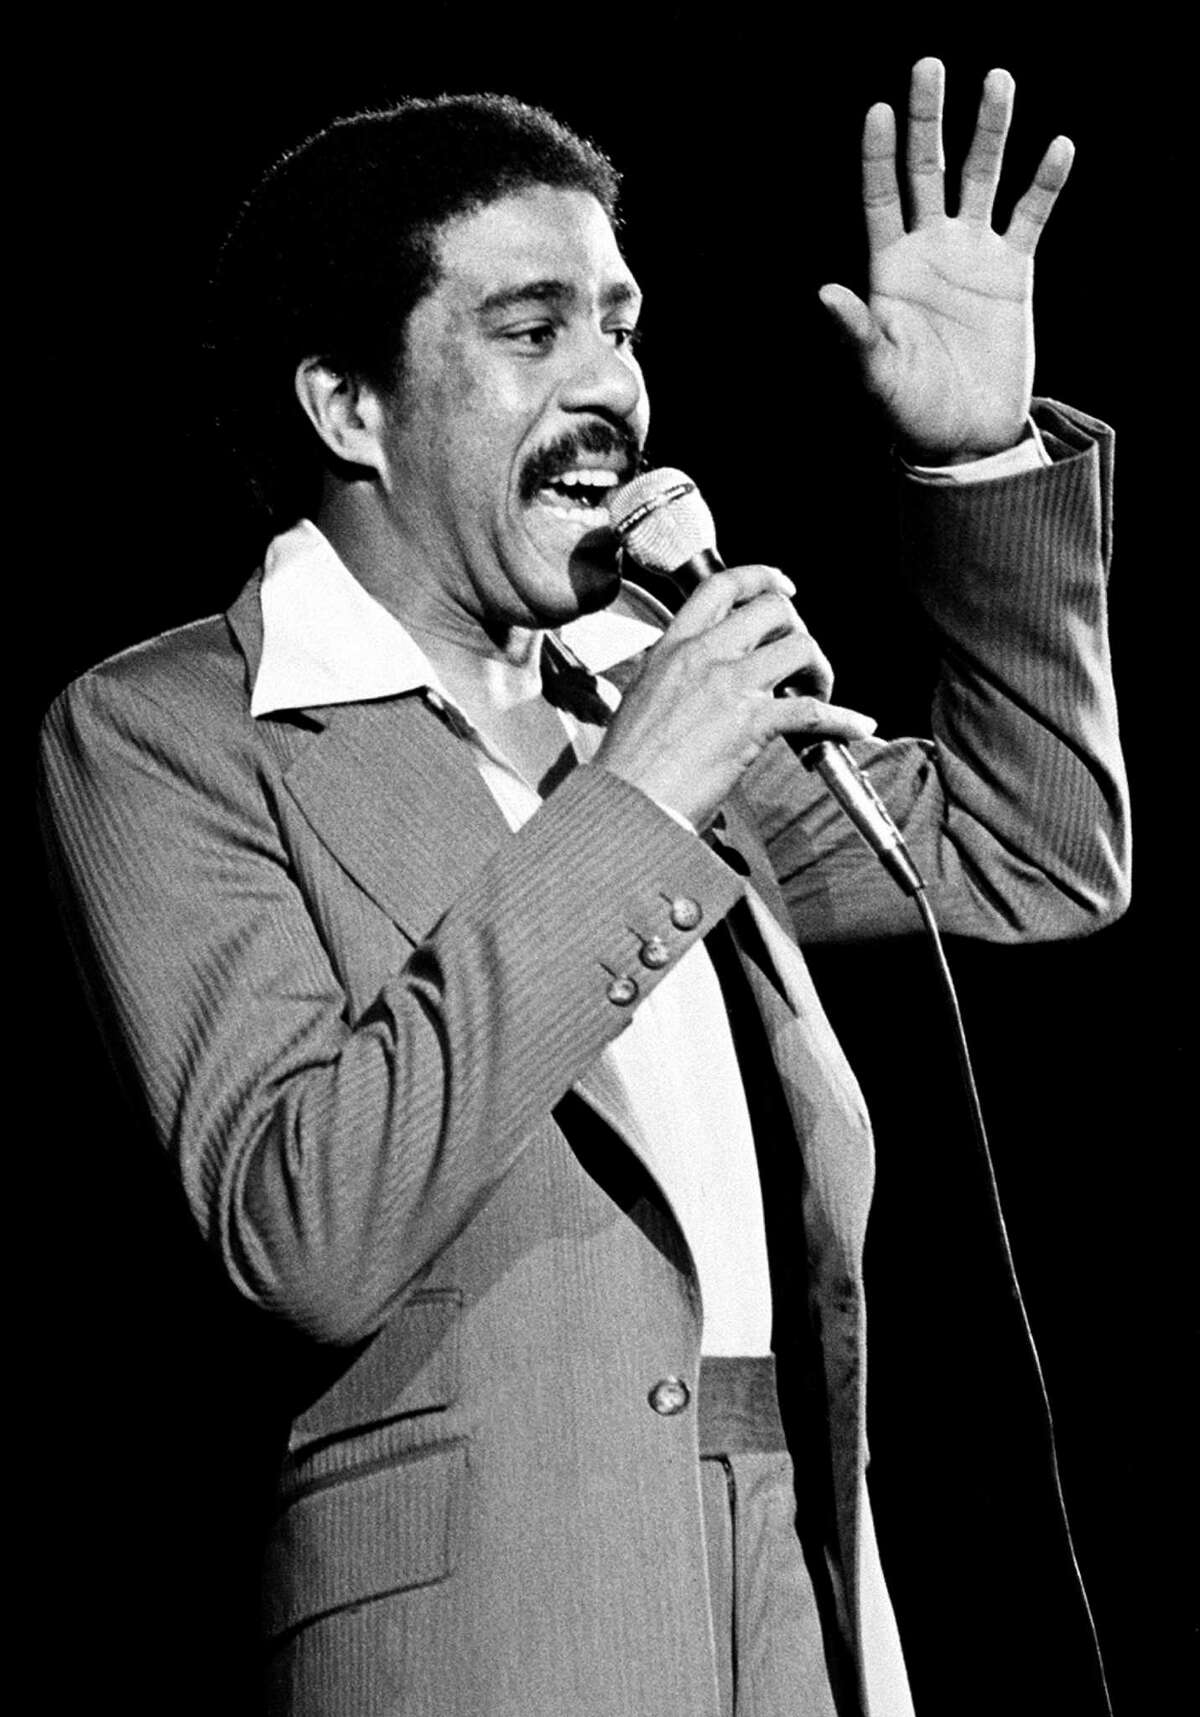 ** FILE ** Comedian-actor Richard Pryor is shown as he performs in 1977. Pryor, the caustic yet perceptive actor-comedian who lived dangerously close to the edge both on stage and off, has died, his ex-wife said Saturday, Dec. 10, 2005. He was 65. Pryor died of a heart attack at his home in the San Fernando Valley sometime late Friday or early Saturday, Flyn Pryor said. (AP Photo, File) Ran on: 12-11-2005 Richard Pryor talked bluntly and worked his own ordeals into his comedy. ALSO Ran on: 12-14-2005 Richard Pryor made one of his final appearances as a stand-up comedian at the Circle Star Theater in San Carlos in 1992.